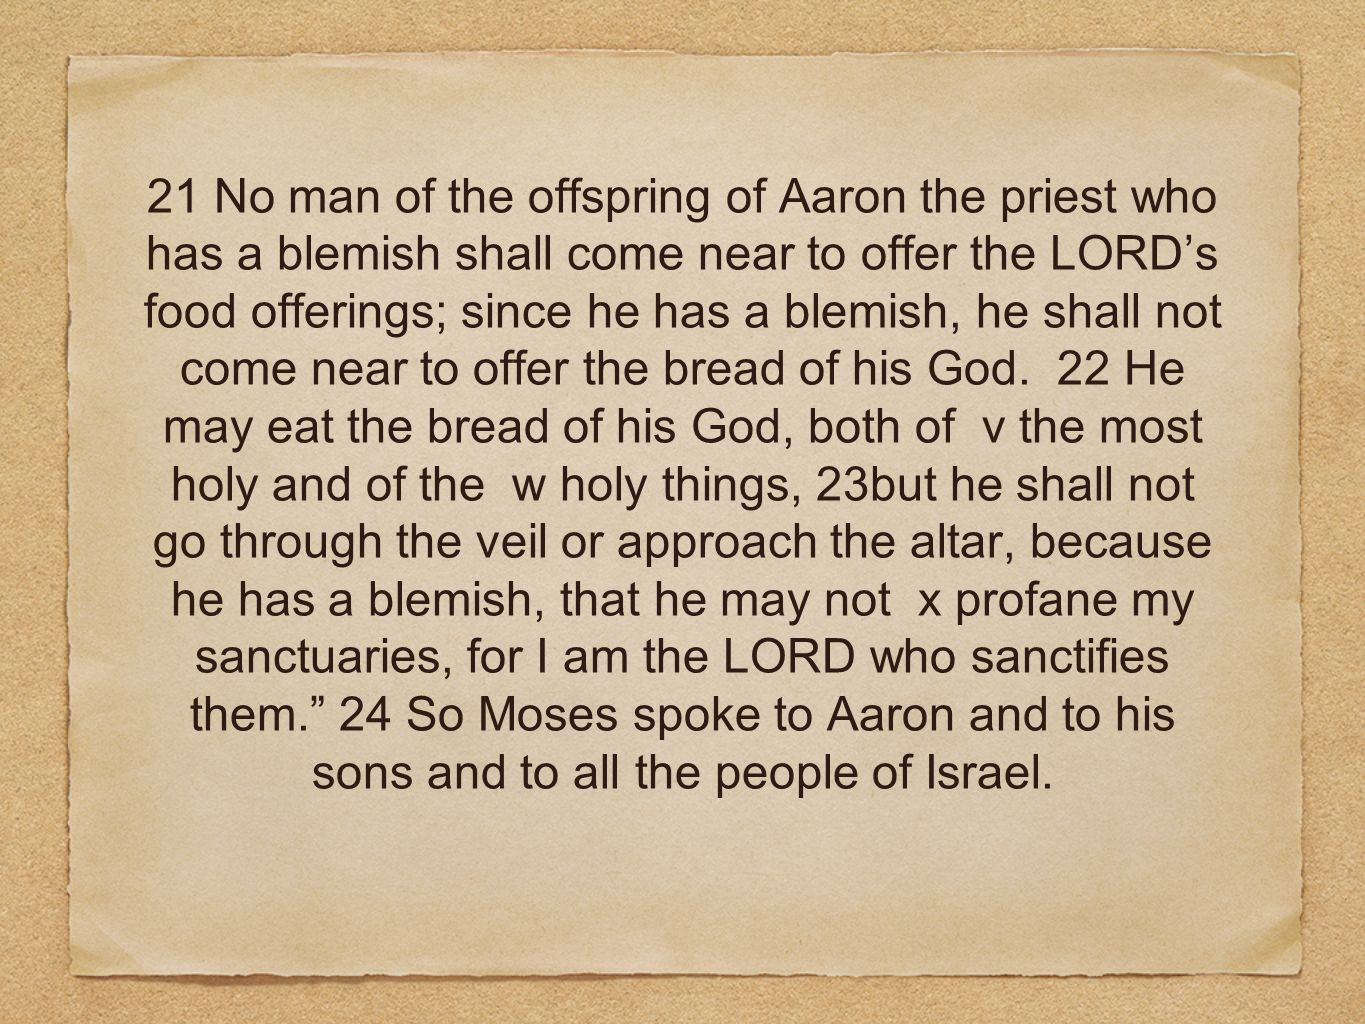 21 No man of the offspring of Aaron the priest who has a blemish shall come near to offer the LORDs food offerings; since he has a blemish, he shall not come near to offer the bread of his God.